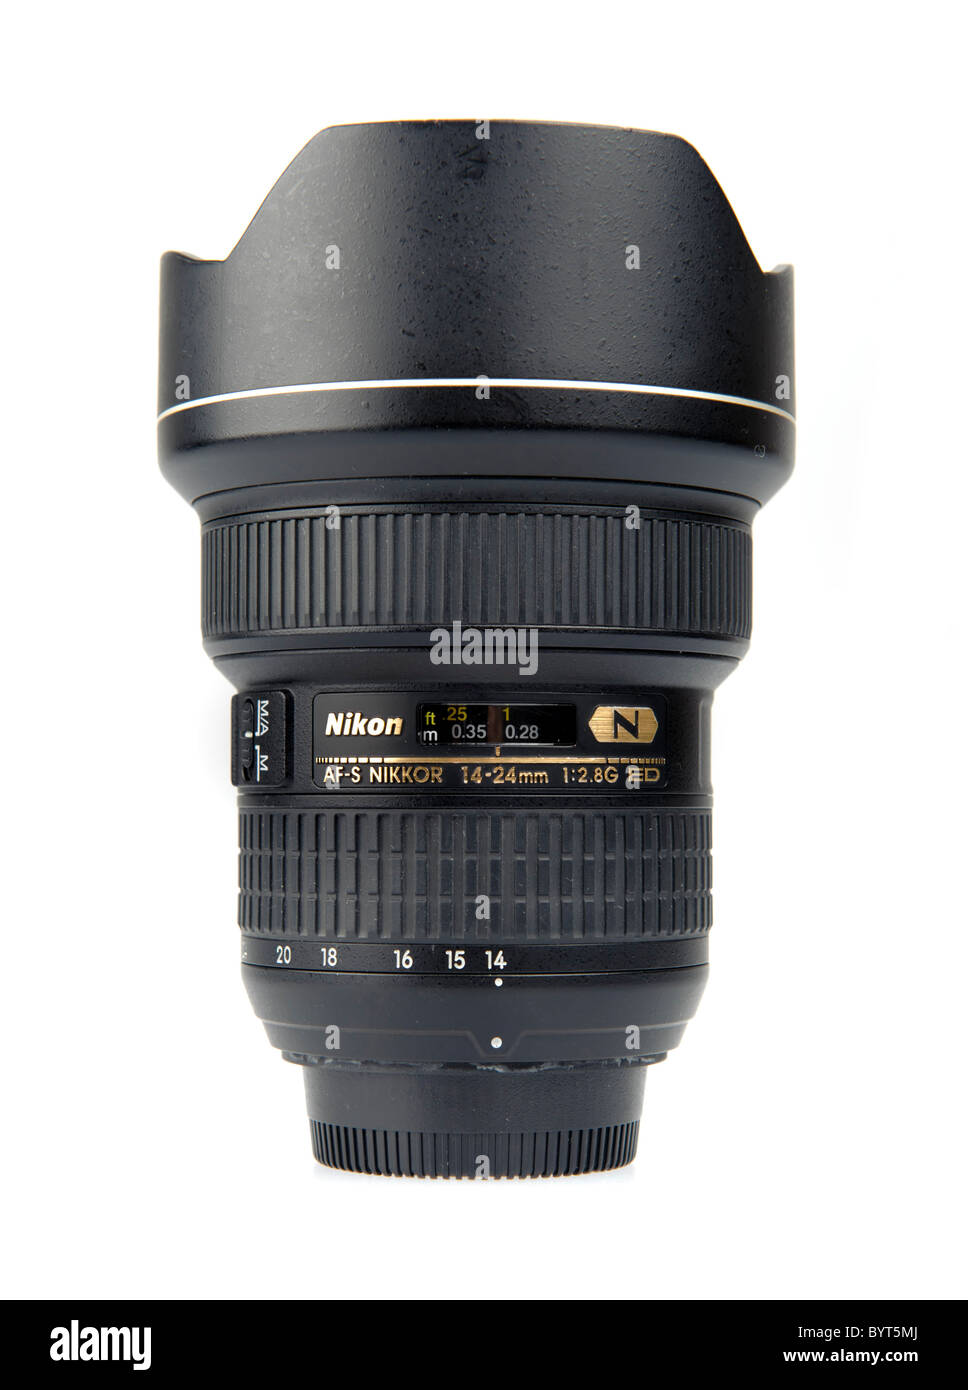 Nikkor 14-24mm f/2.8 ultra wide angle lens for Nikon cameras cutout on white background - Stock Image